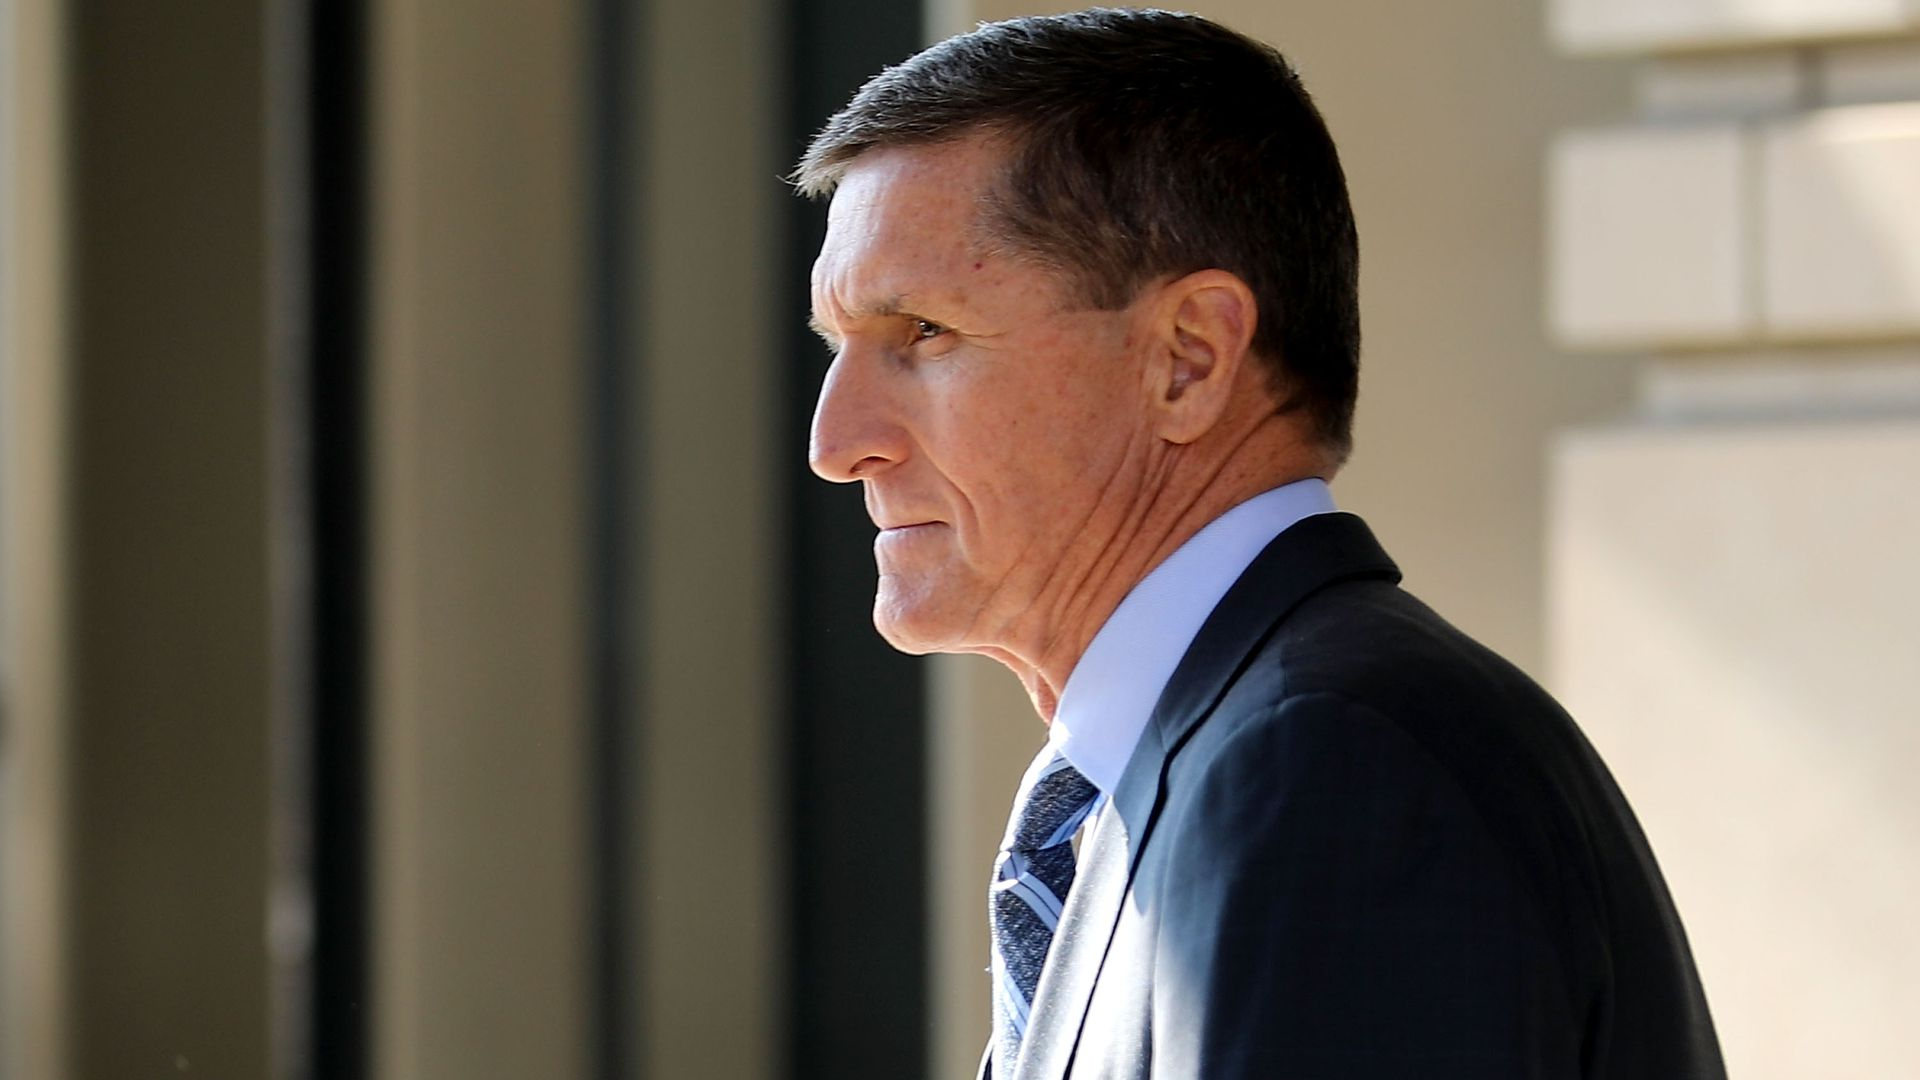 Michael Flynn outside in a suit.